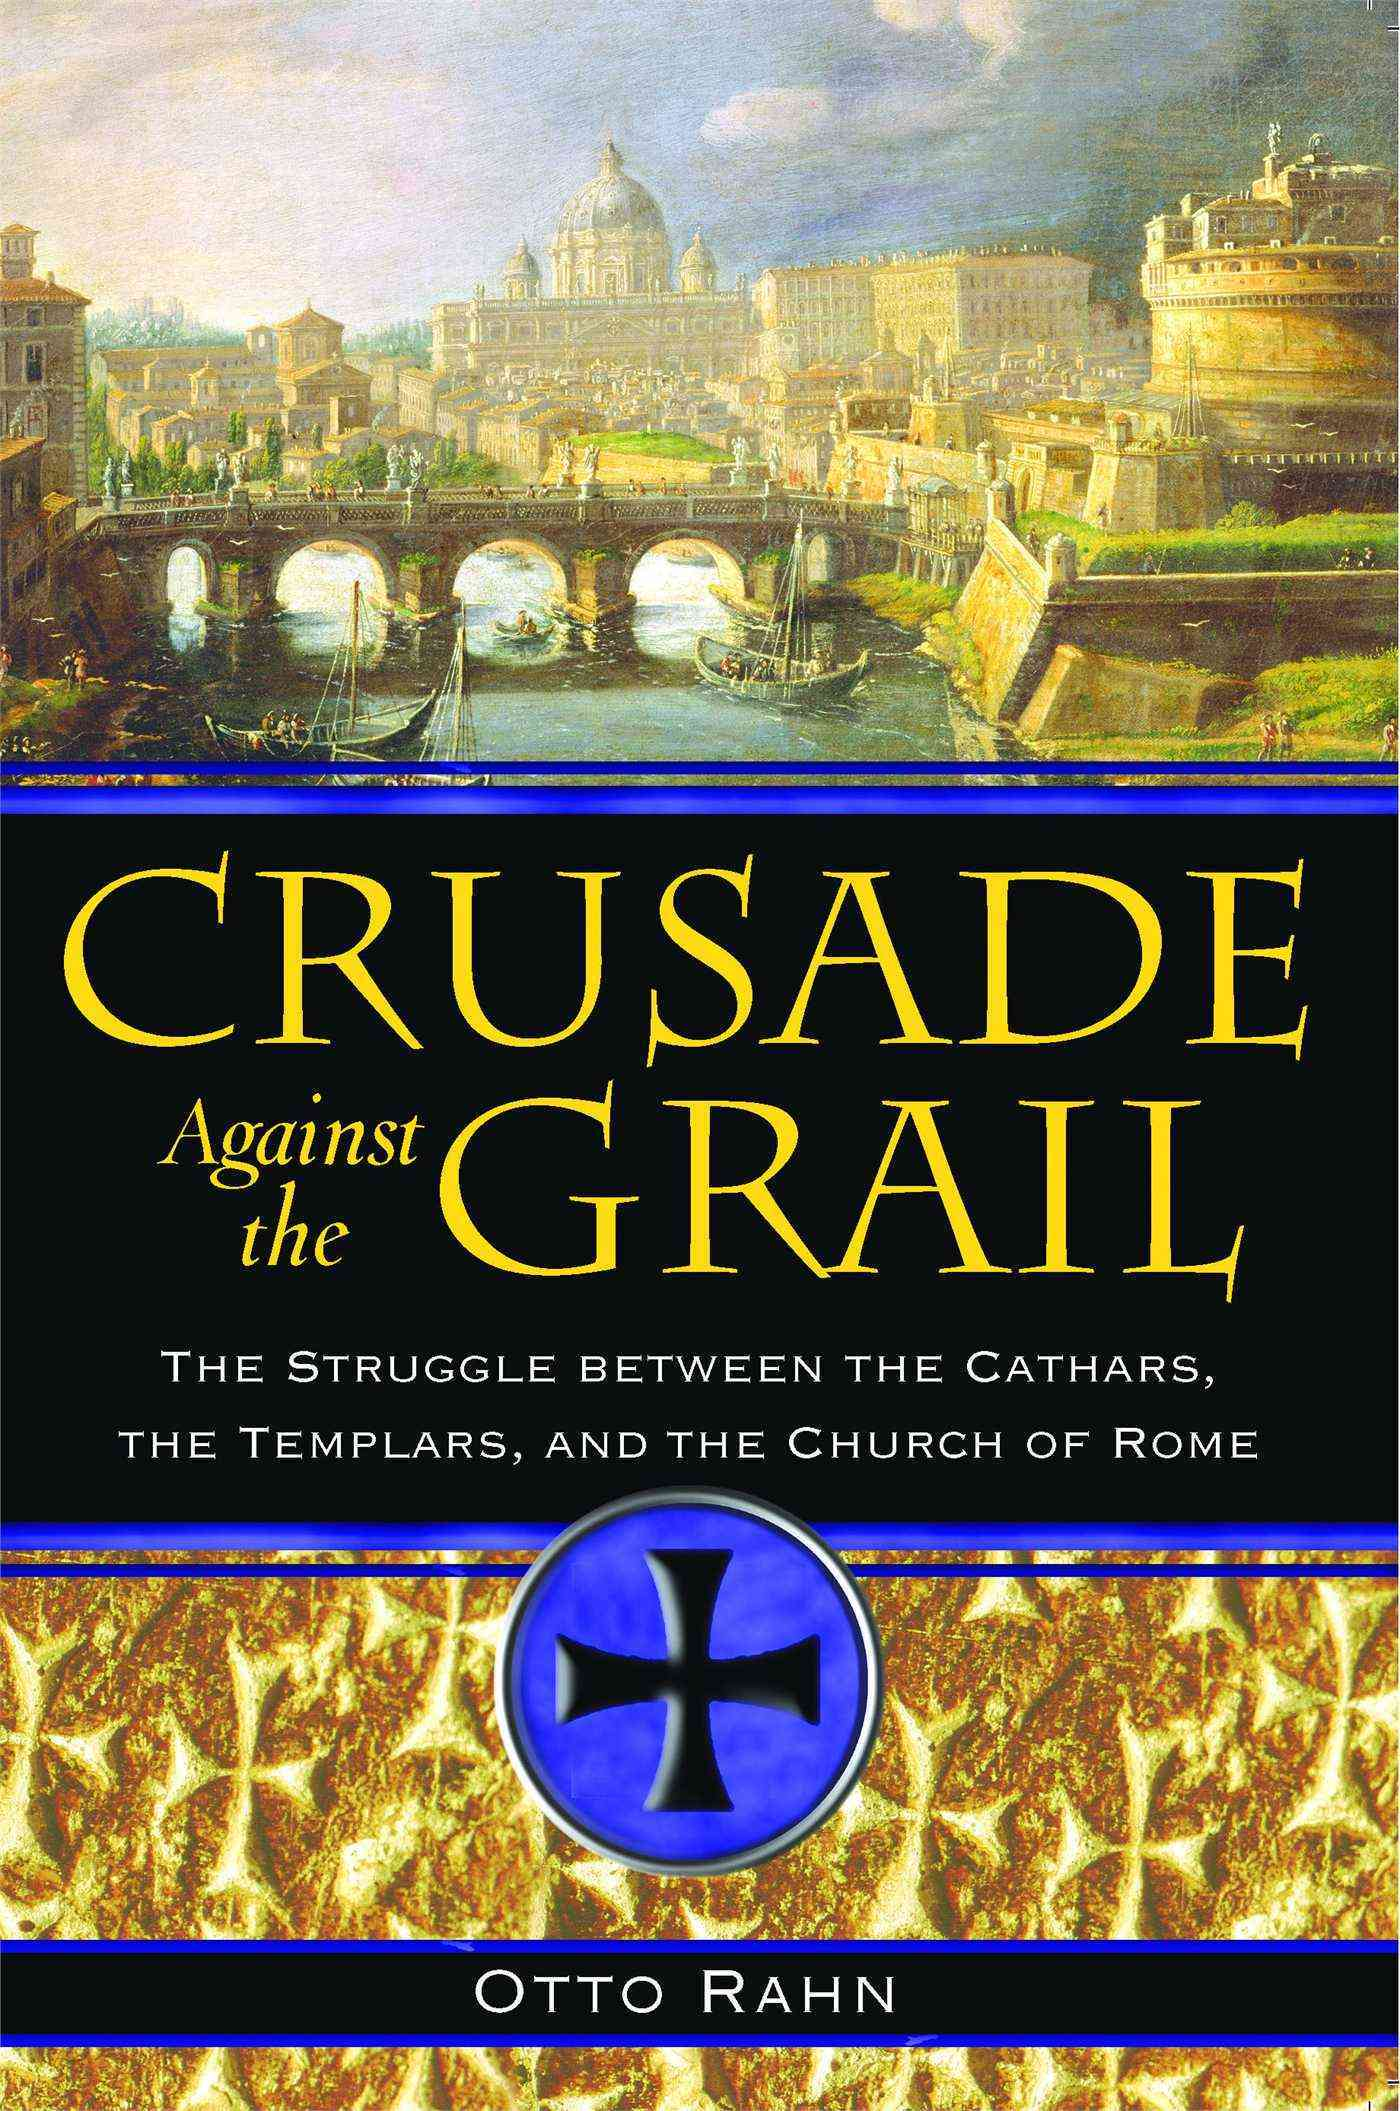 Crusade Against the Grail: The Struggle Between the Cathars, the Templars, And the Church of Rome (Paperback)